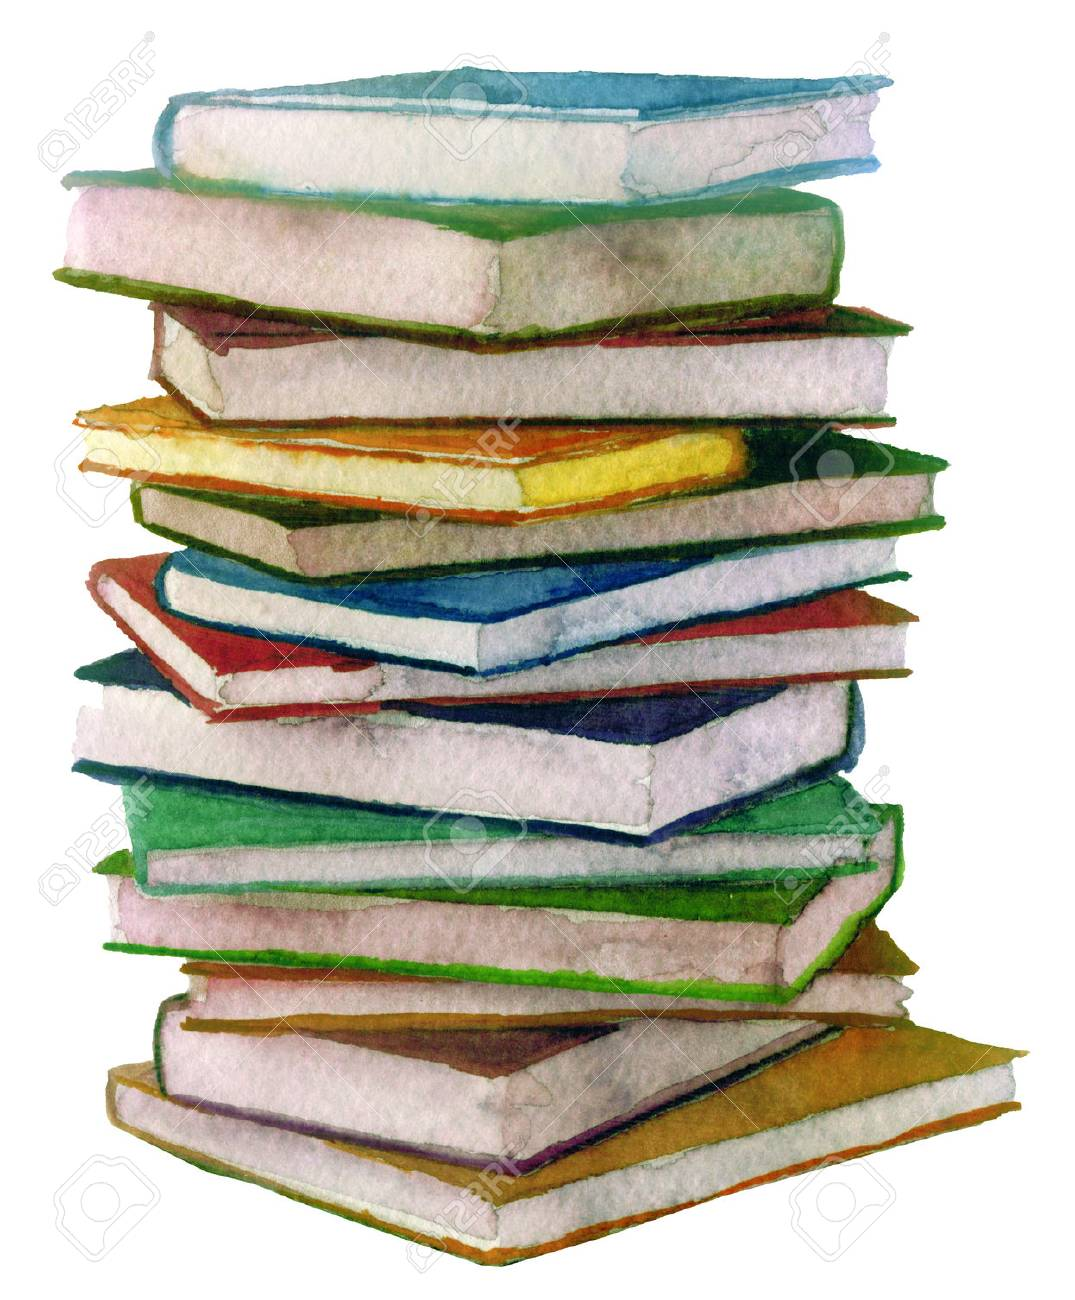 Watercolor Stack Of Books Stock Photo, Picture And Royalty Free ...